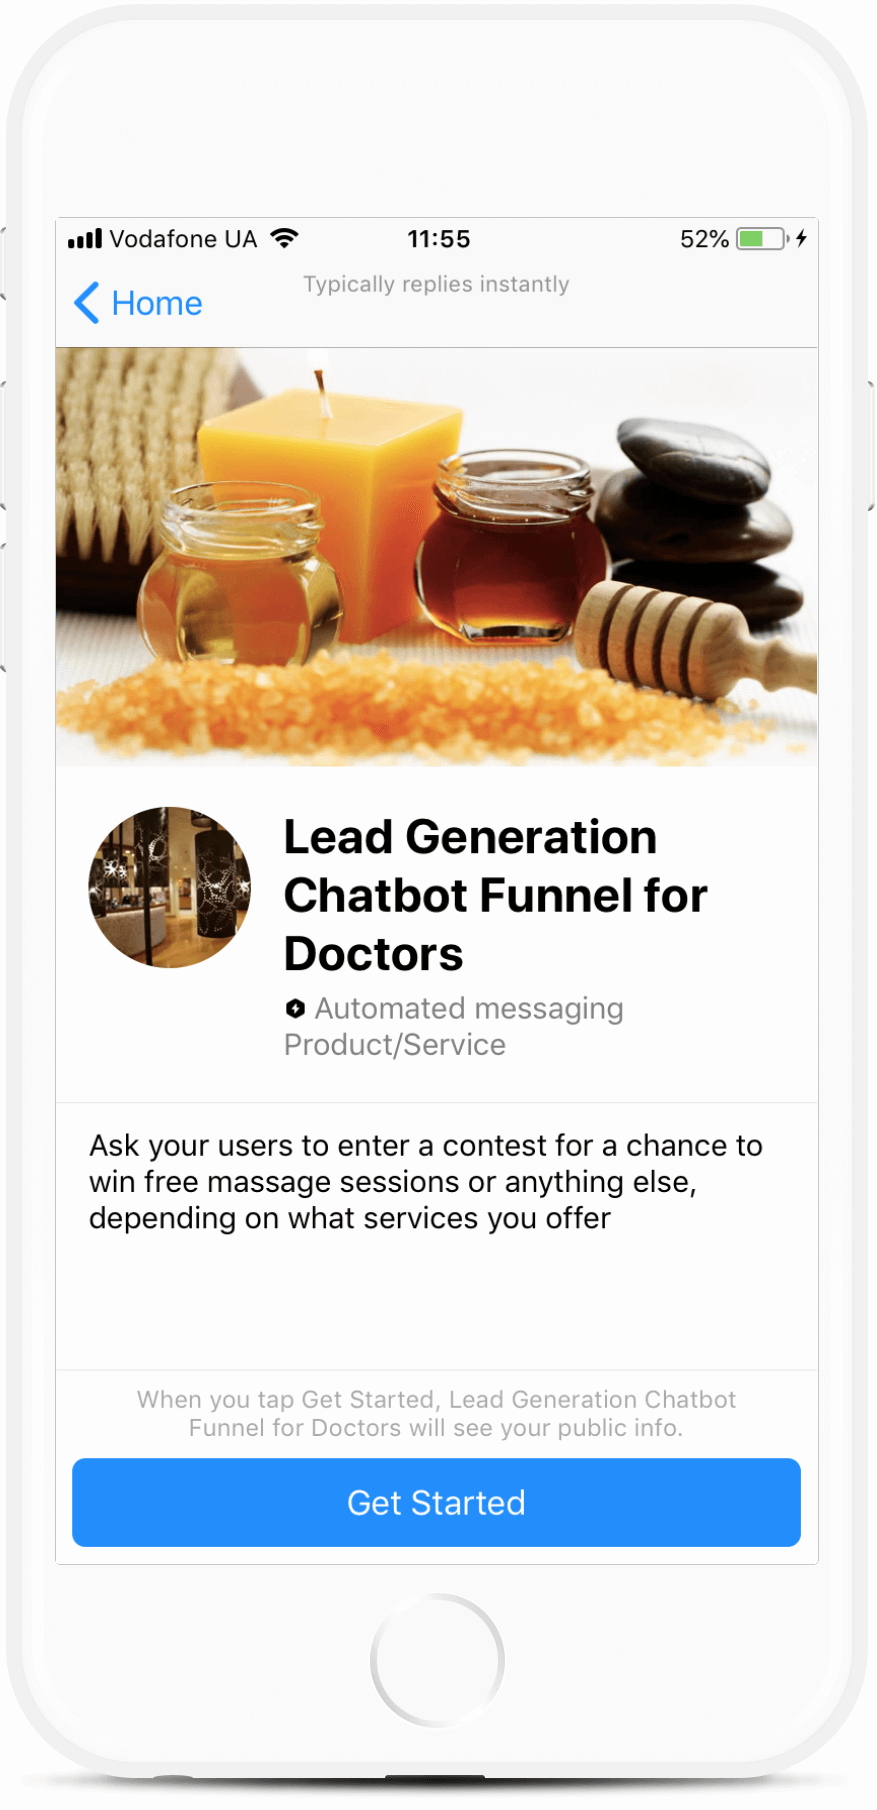 Lead Generation Chatbot Funnel for Doctors (ManyChat)